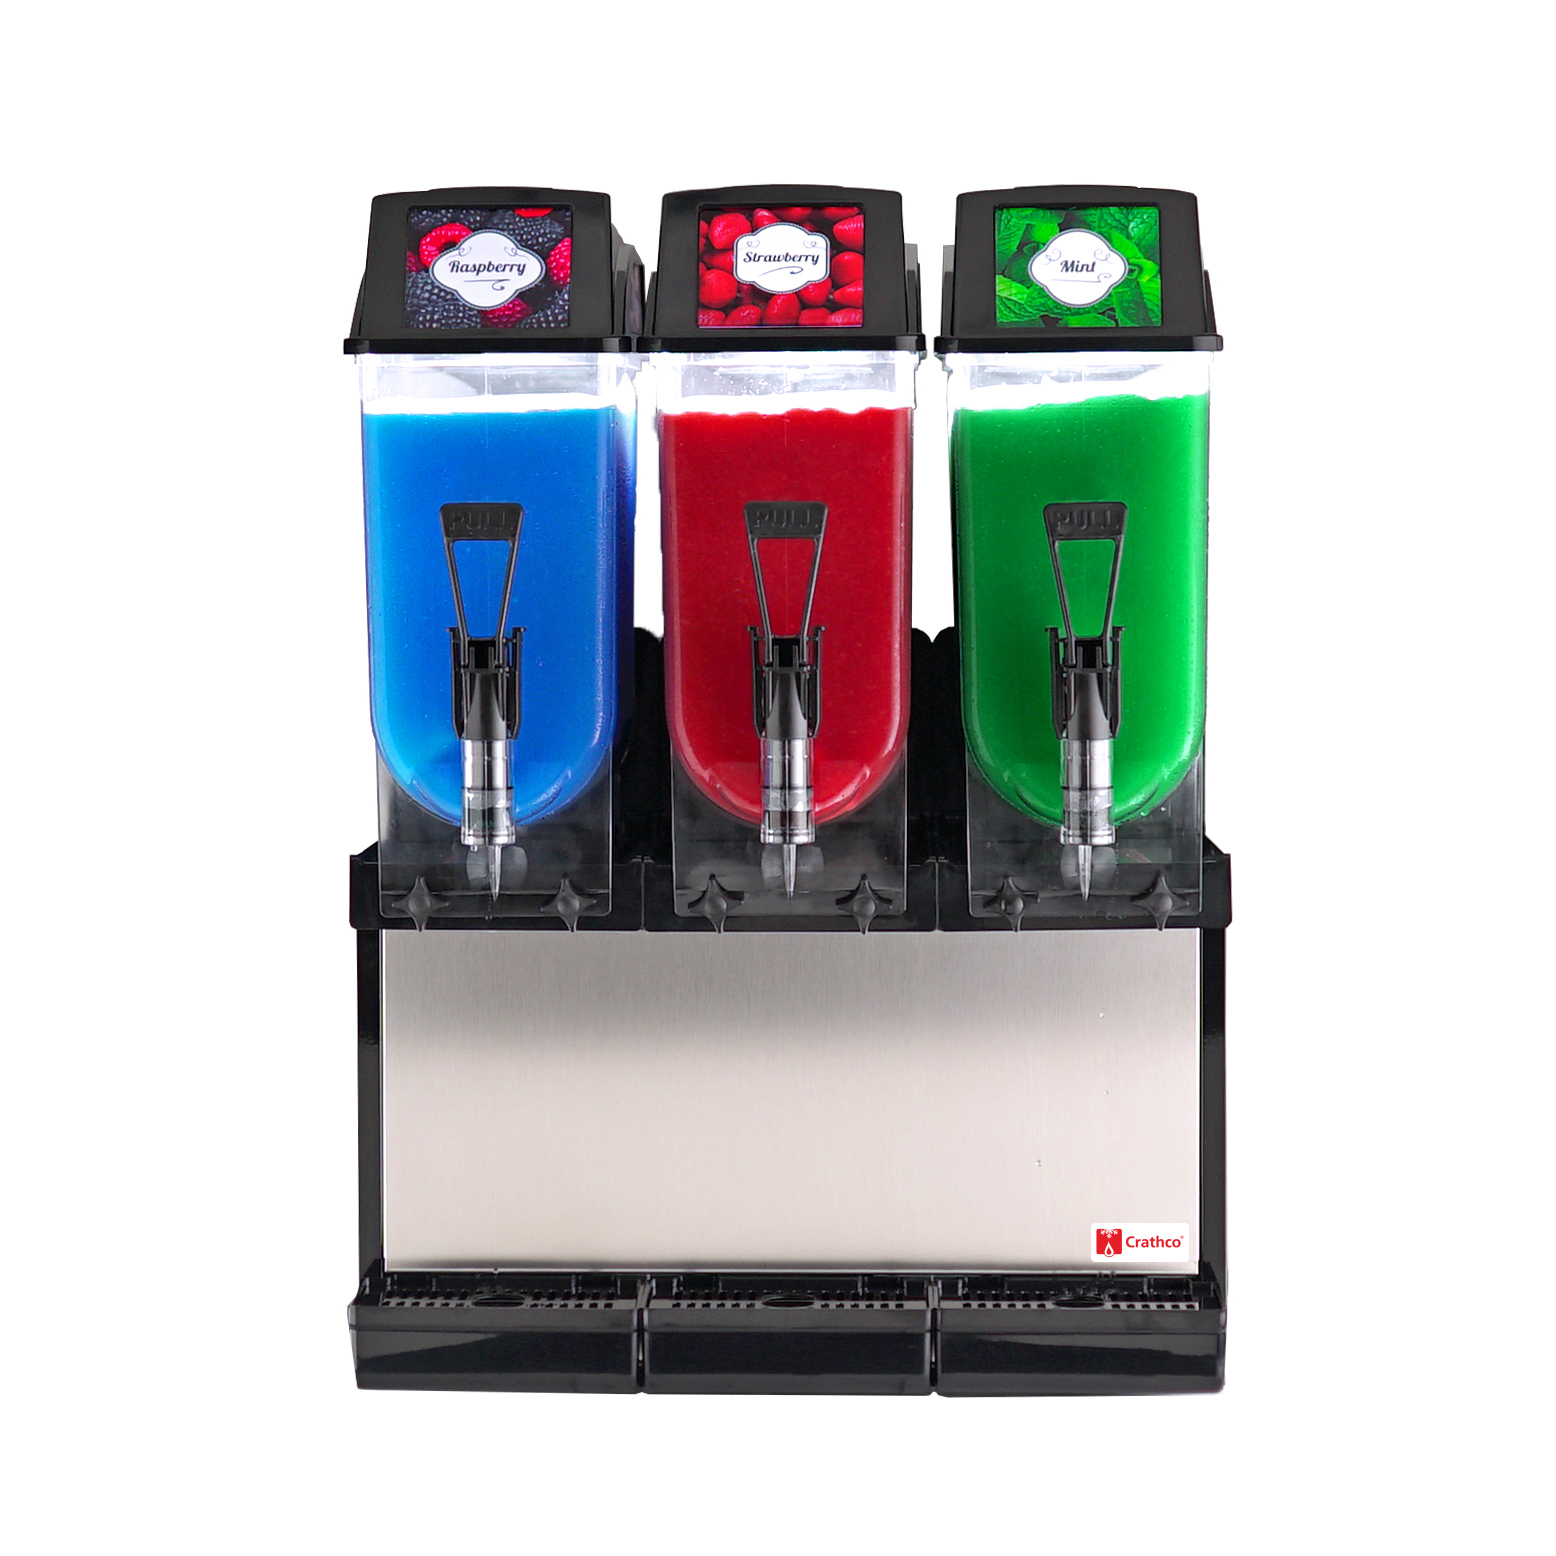 Grindmaster-Cecilware FROSTY 3 frozen drink machine, non-carbonated, bowl type